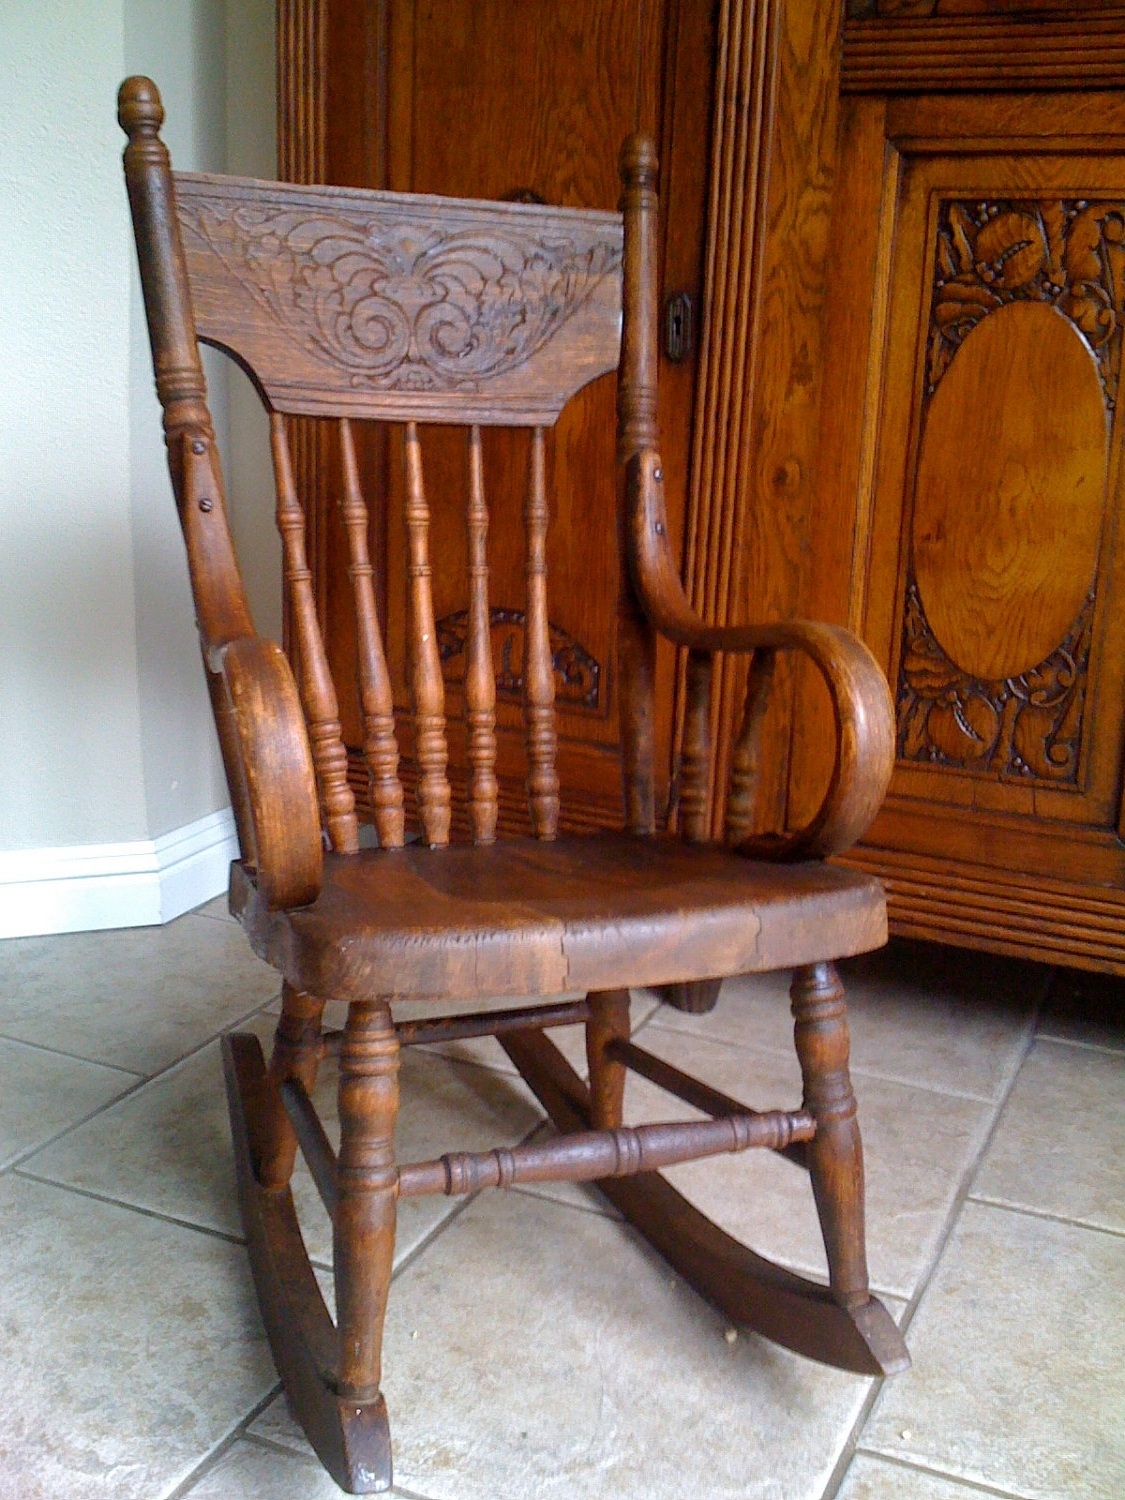 Widely Used Old Fashioned Rocking Chairs In Incredible Old Fashioned Rocking Chair Pertaining Luxury Interior (View 15 of 15)